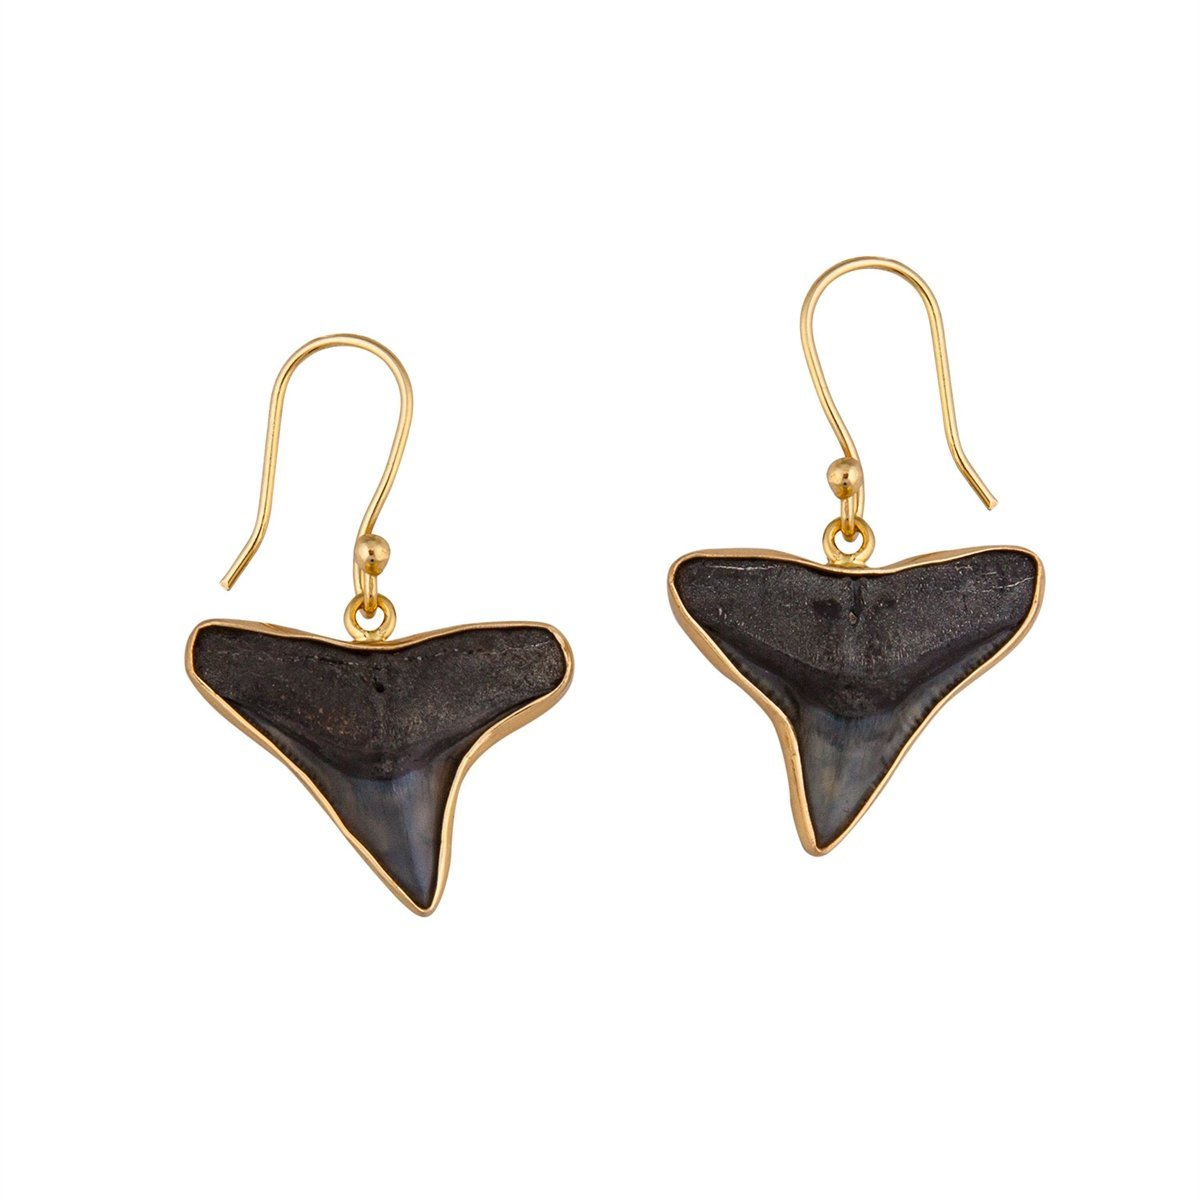 alchemia-fossil-shark-teeth-earrings - 1 - Charles Albert Inc